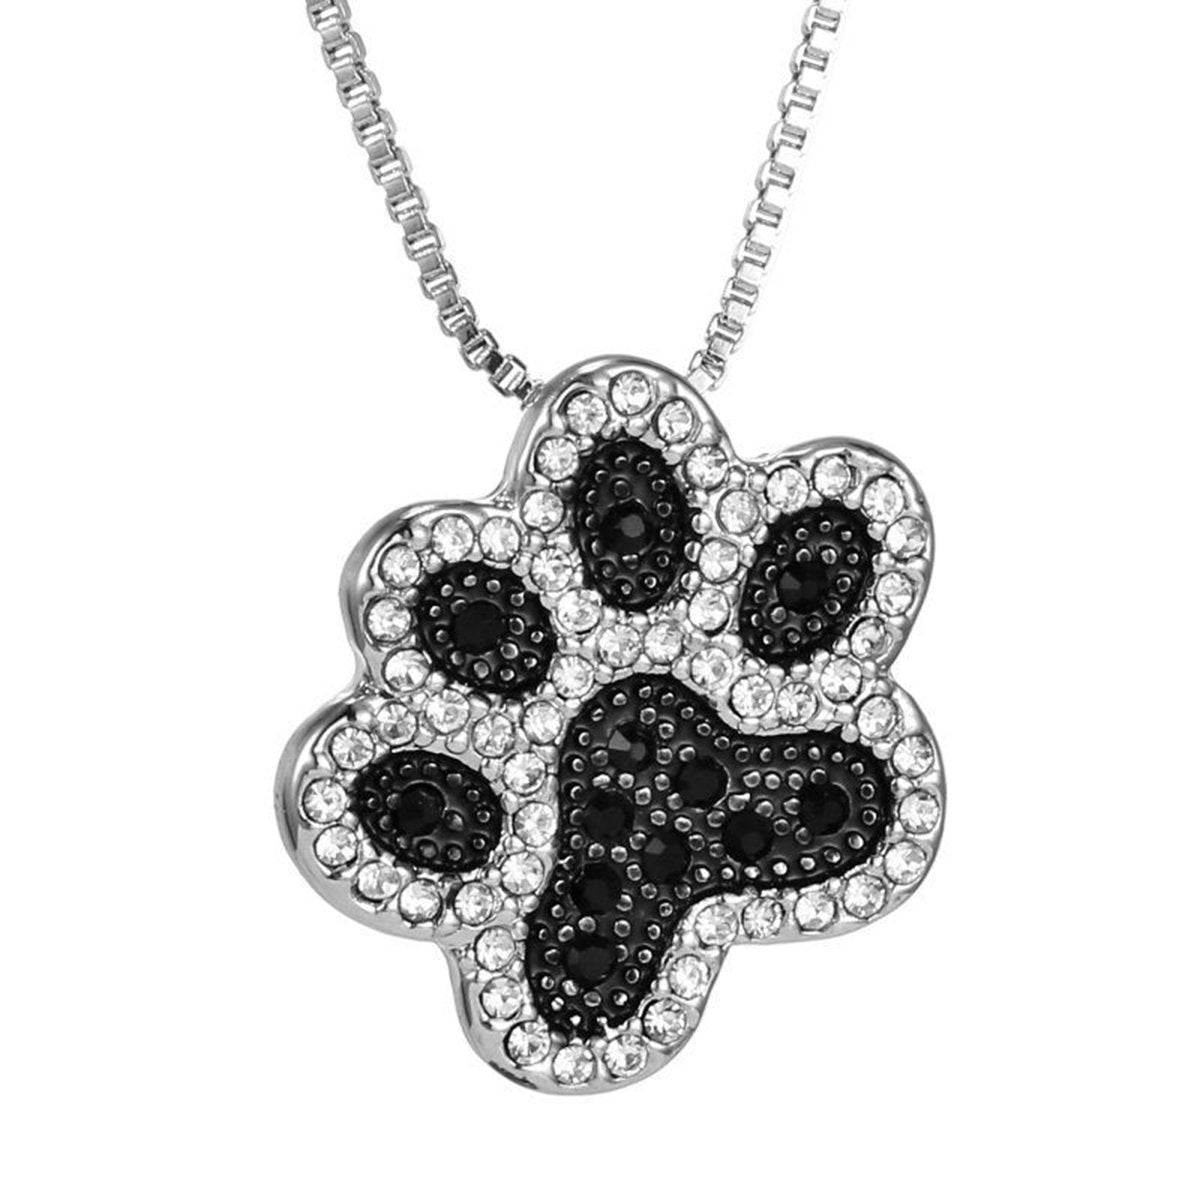 WISH Explosion Fashion Creative Love Dog Claw Pendant Necklace Foreign Trade New Metal Jewelry Wholesale